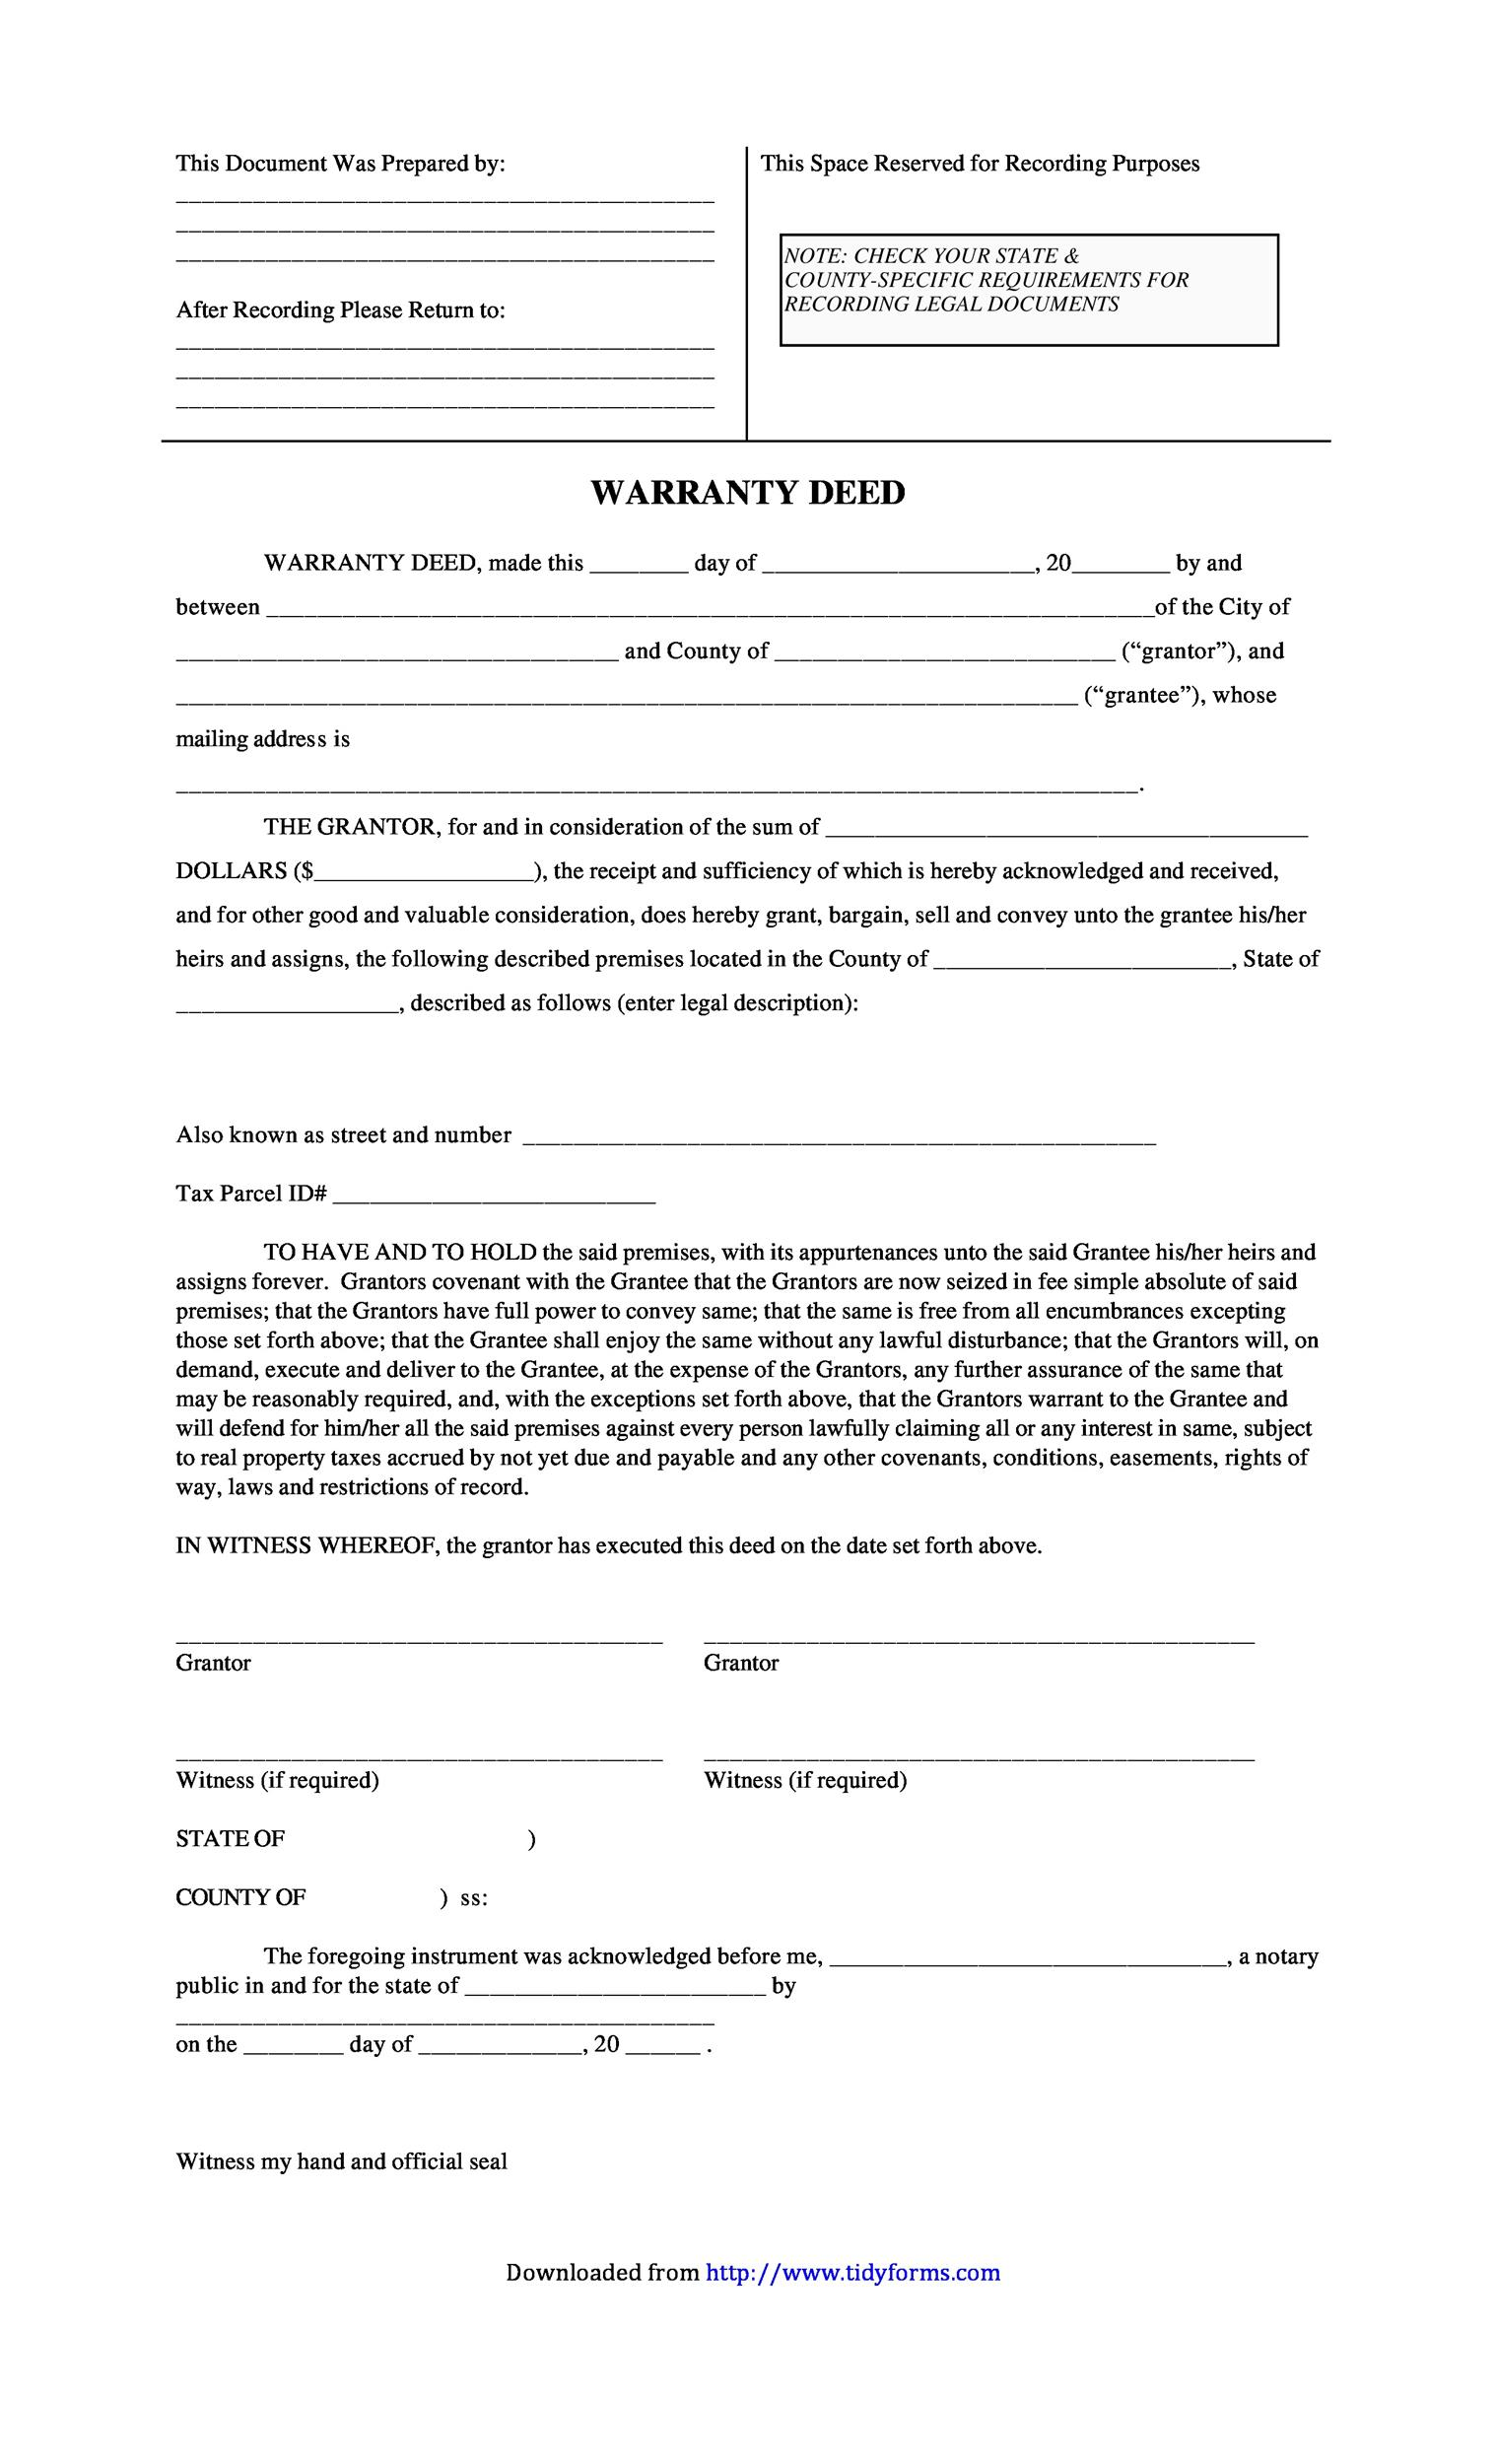 Free Warranty deed template 24